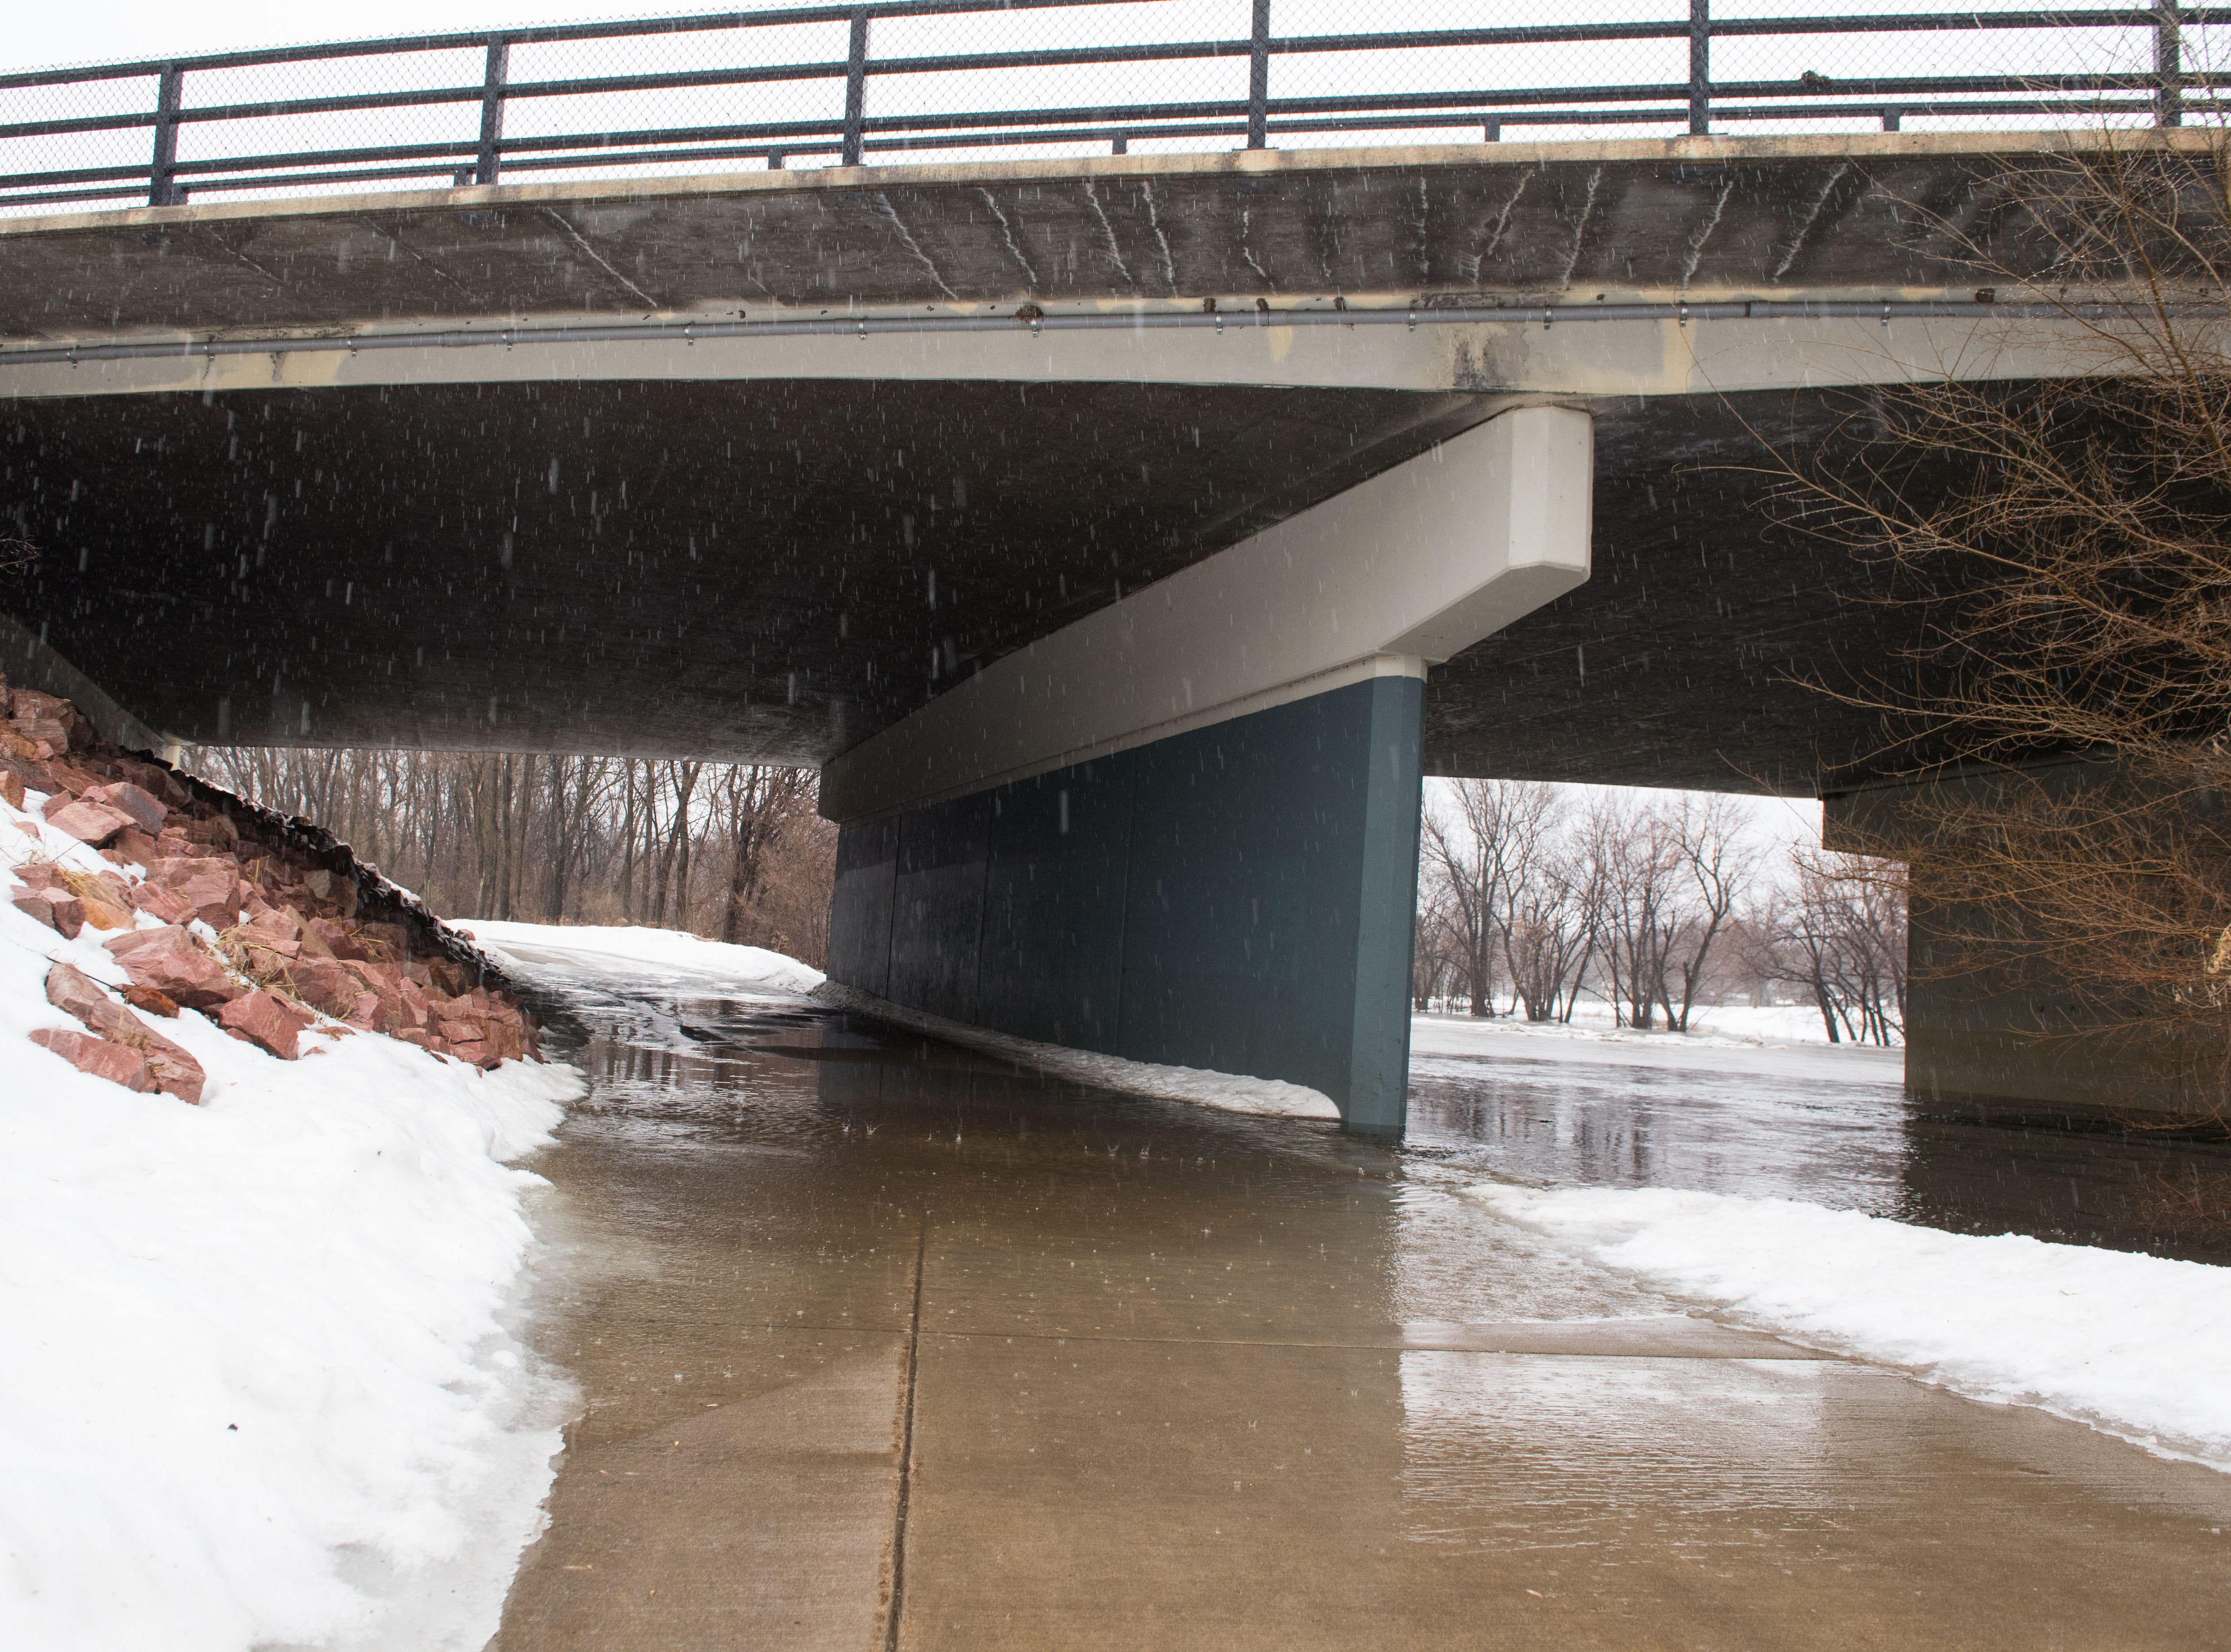 The bike trail at Yankton Trail Park in Sioux Falls, S.D. begins to flood, Wednesday, March 13, 2019.